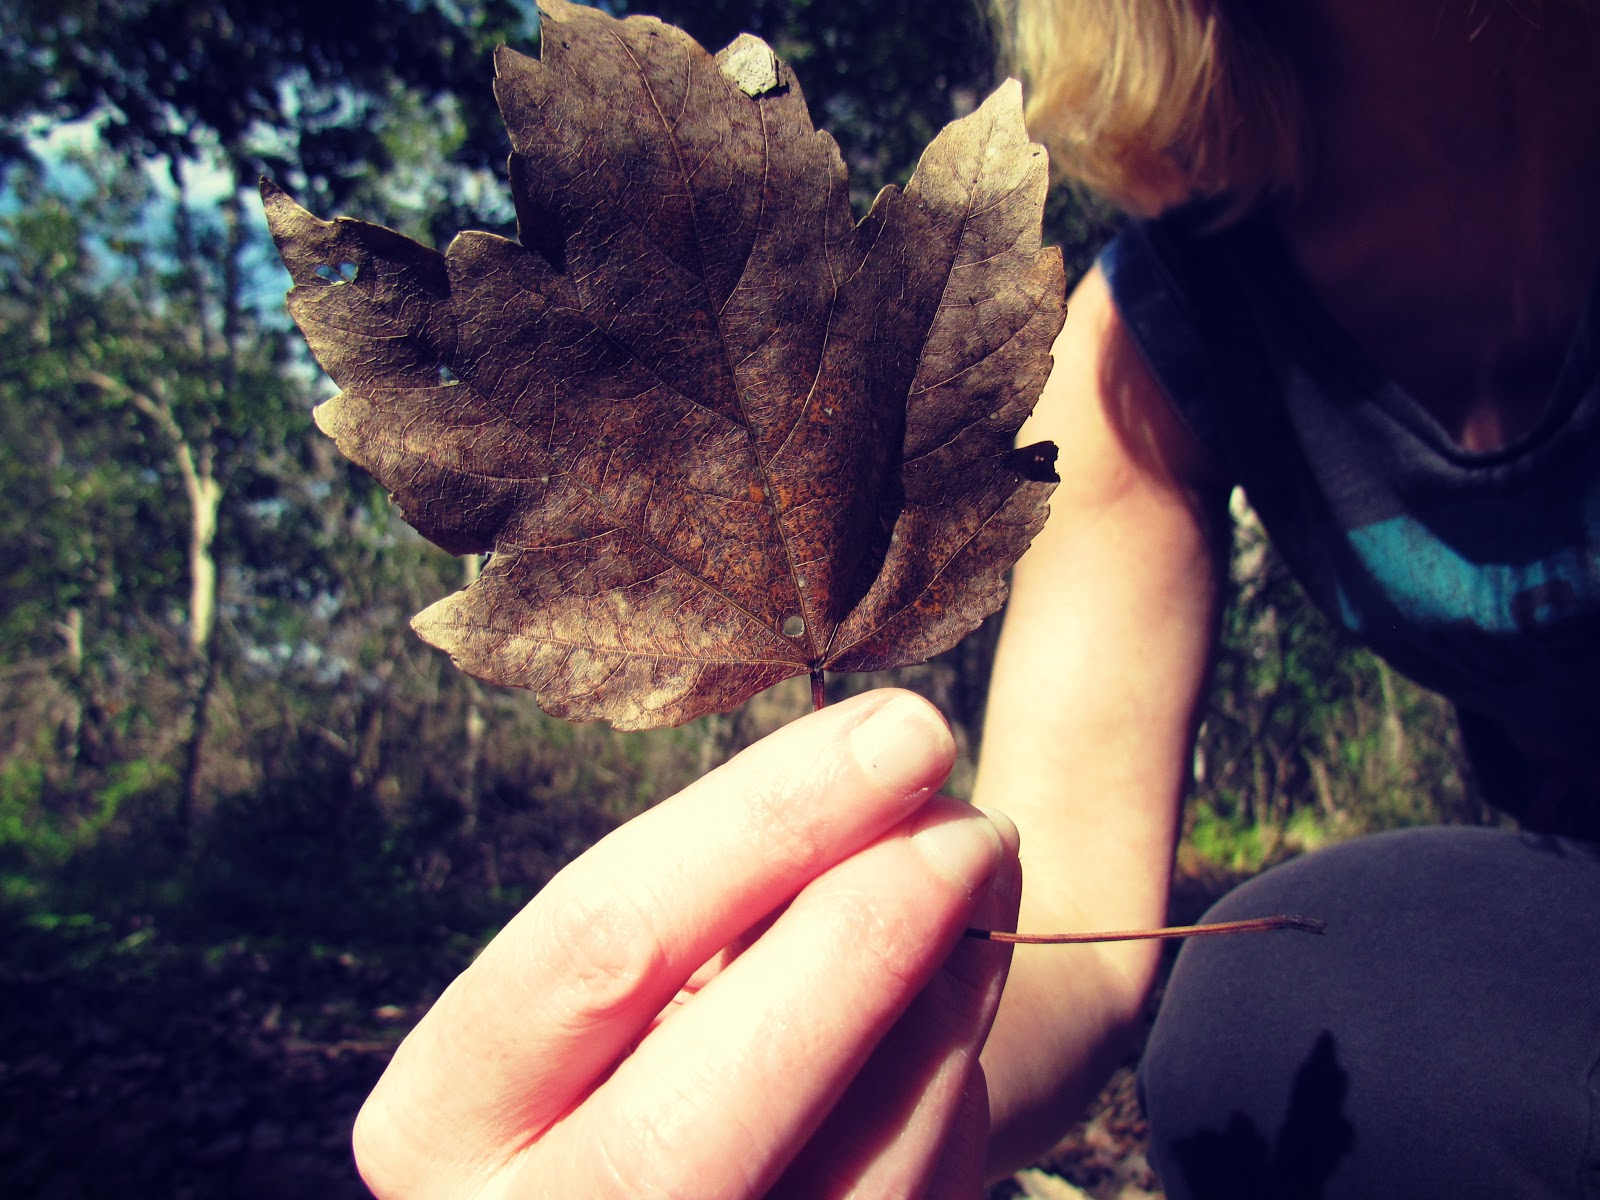 Outdoor Photoshoot + Rustic Crisp Fall Leaf in the Forest